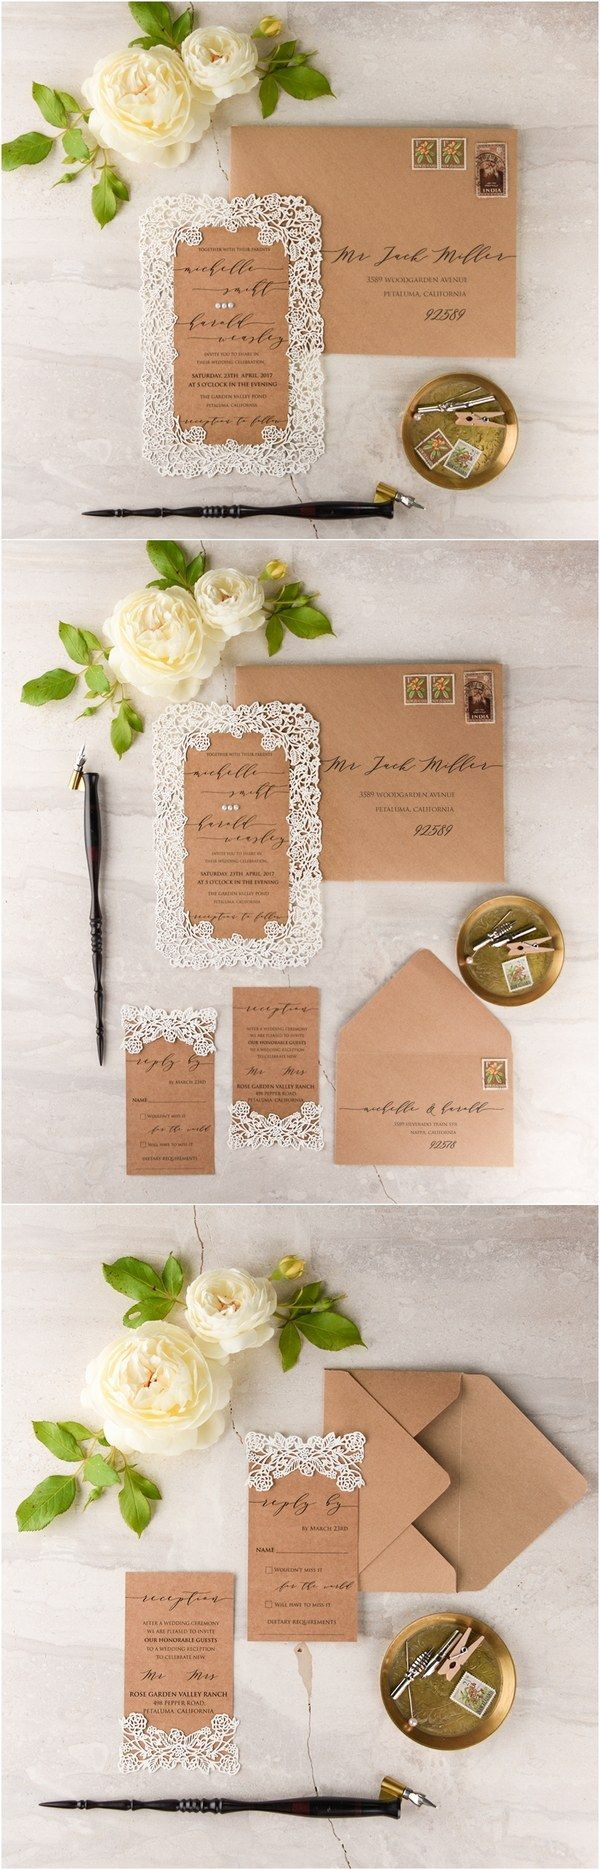 lotus flower wedding invitations%0A We Love  Laser Cut Wedding Invitations   lovepolkadots